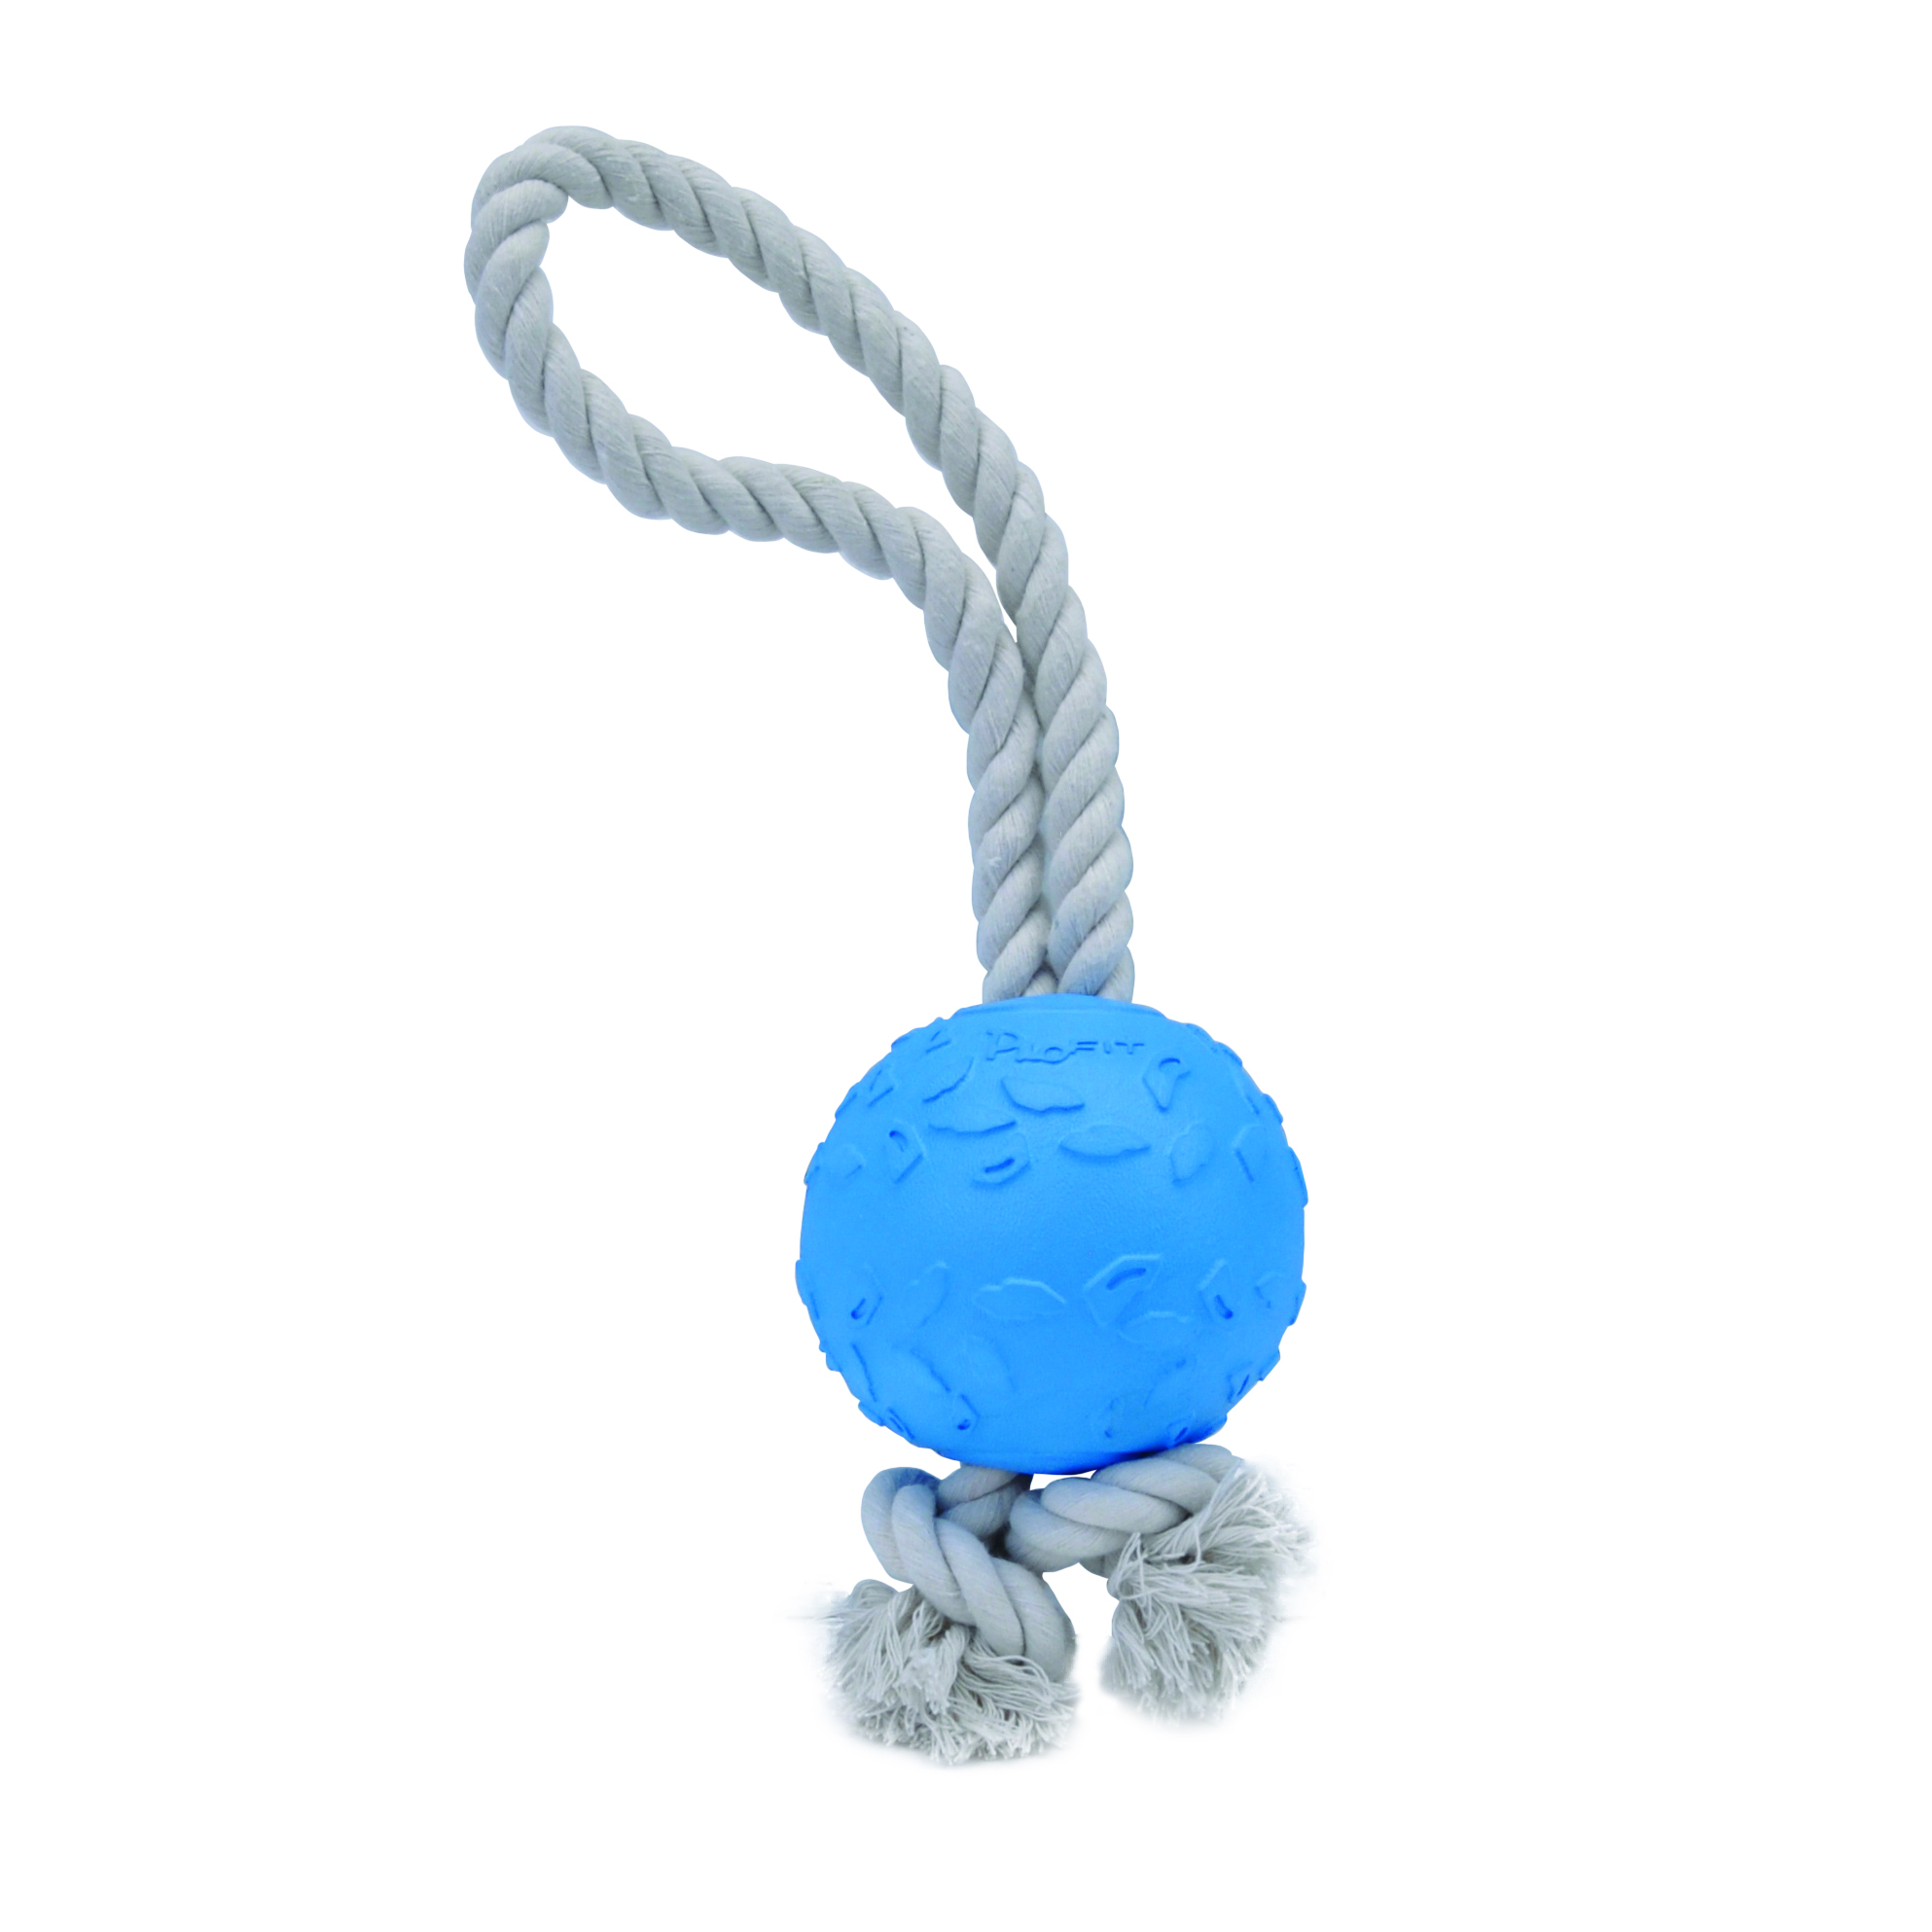 Pro™Fit Foam Toy Rope Ball